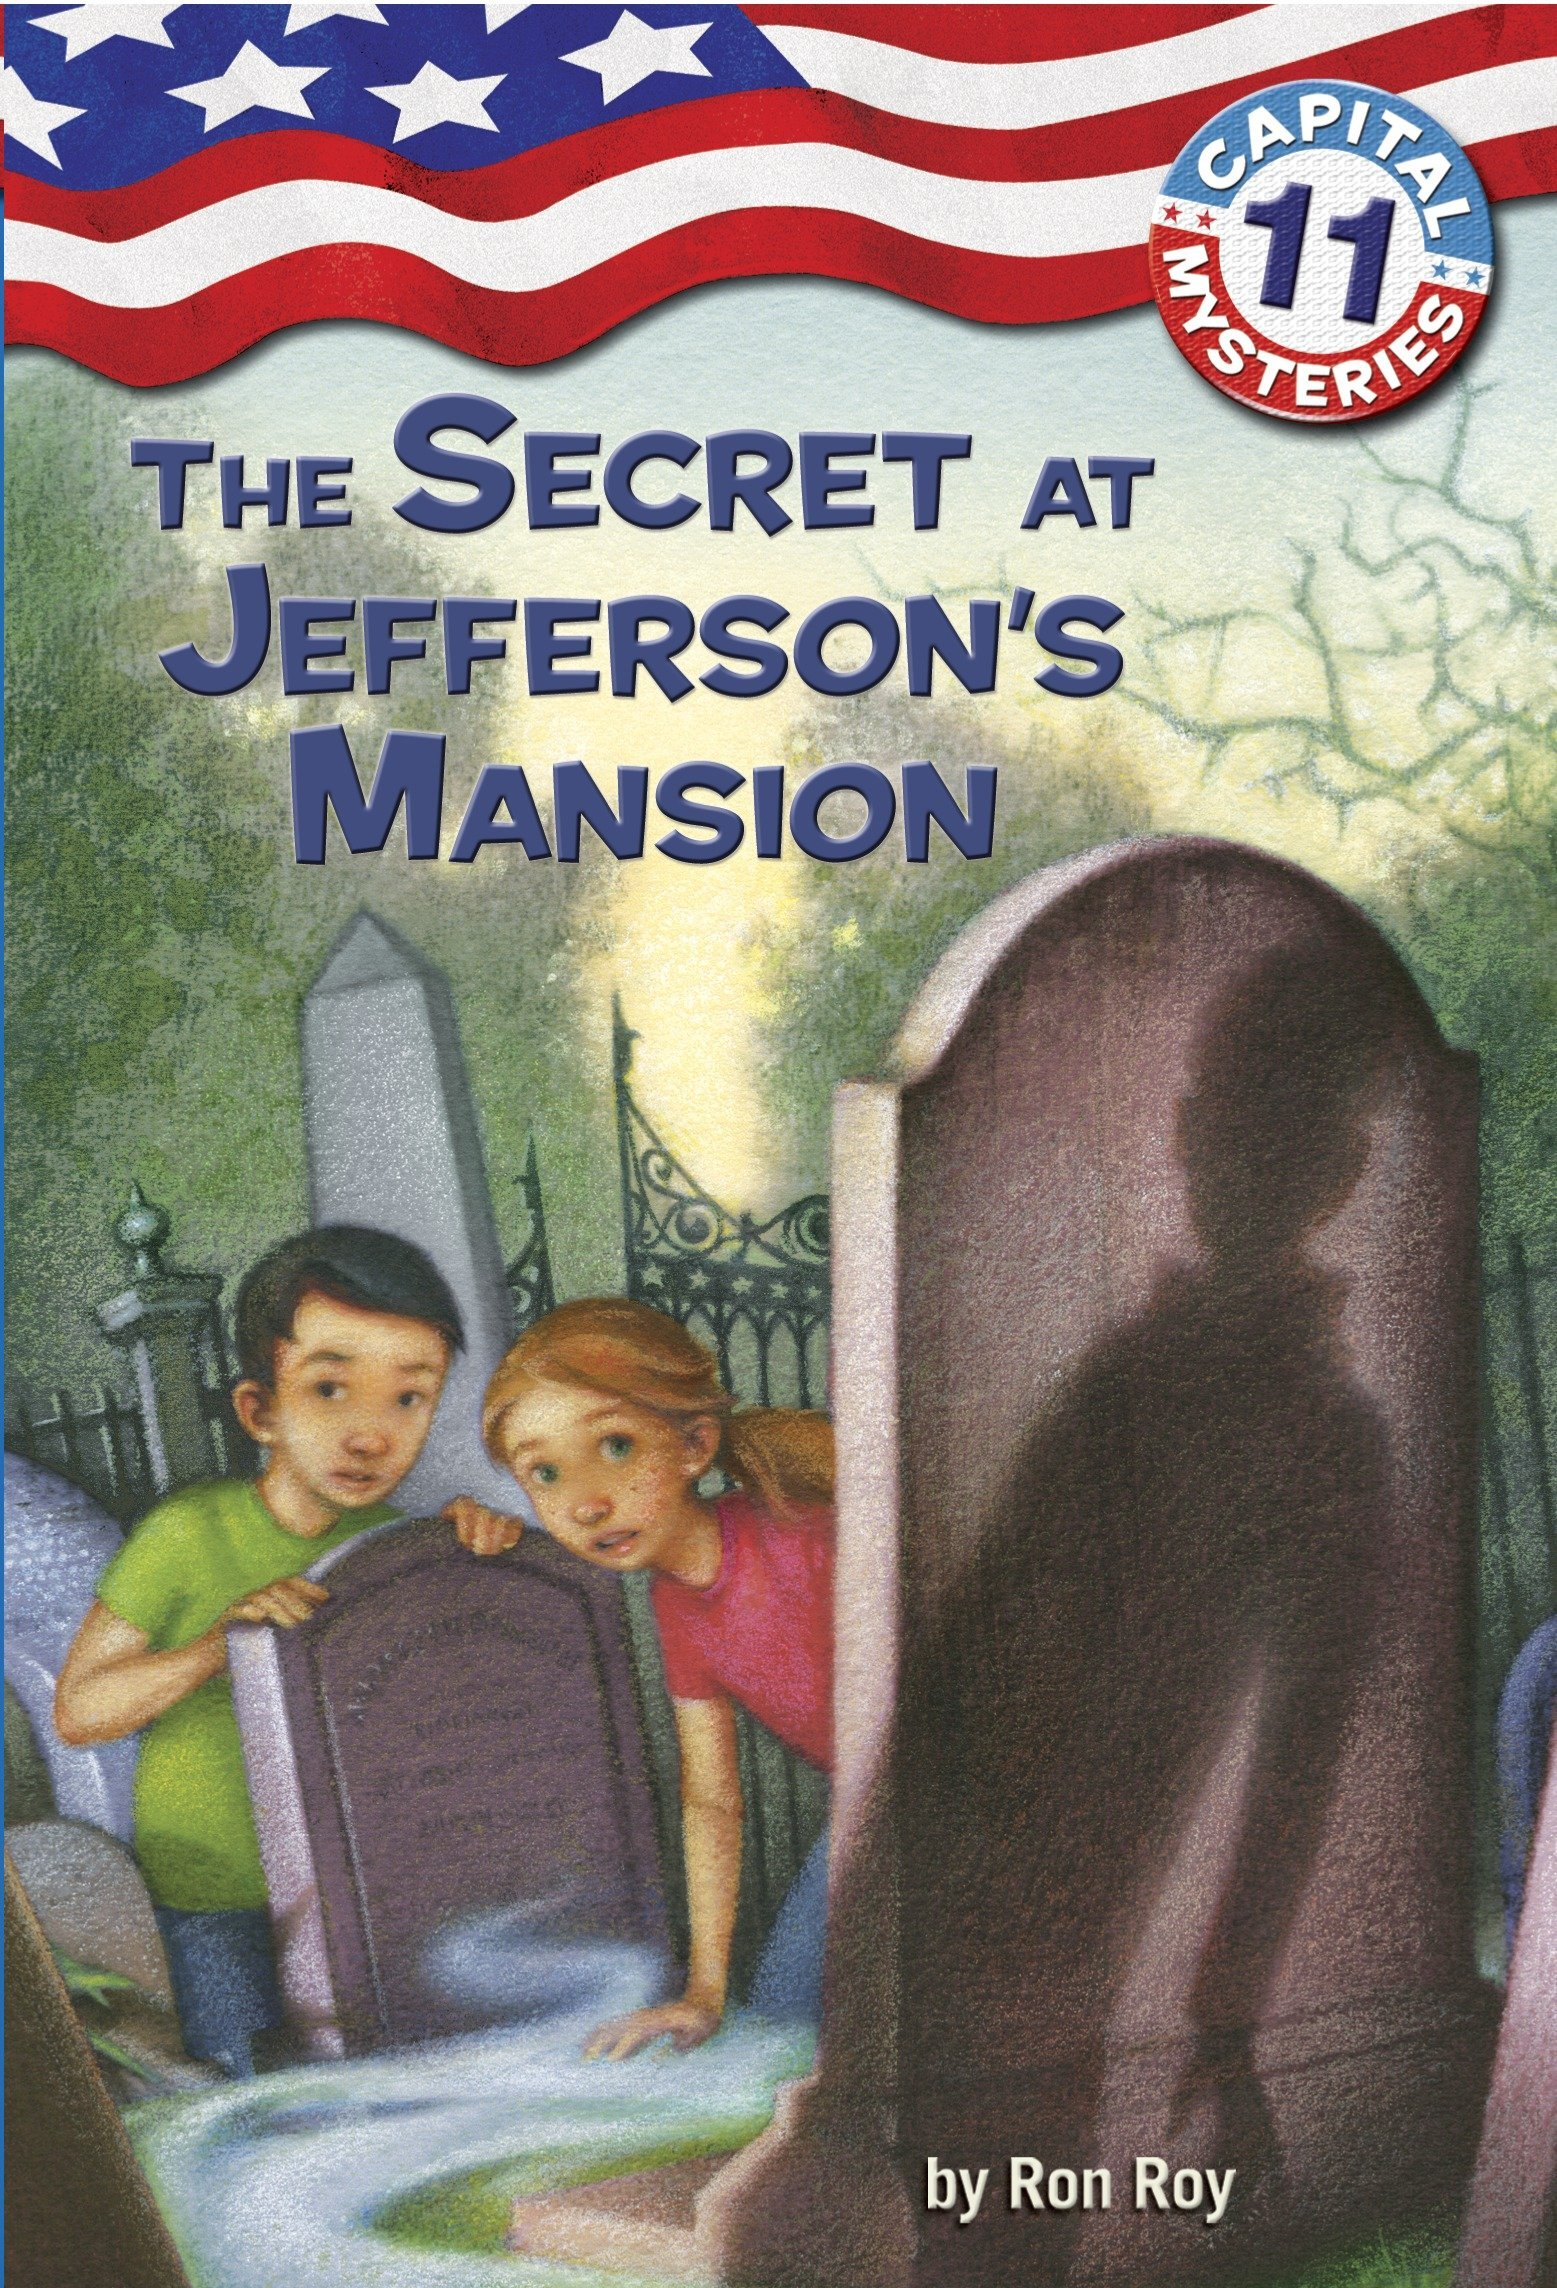 Download Capital Mysteries #11: The Secret at Jefferson's Mansion ePub fb2 book